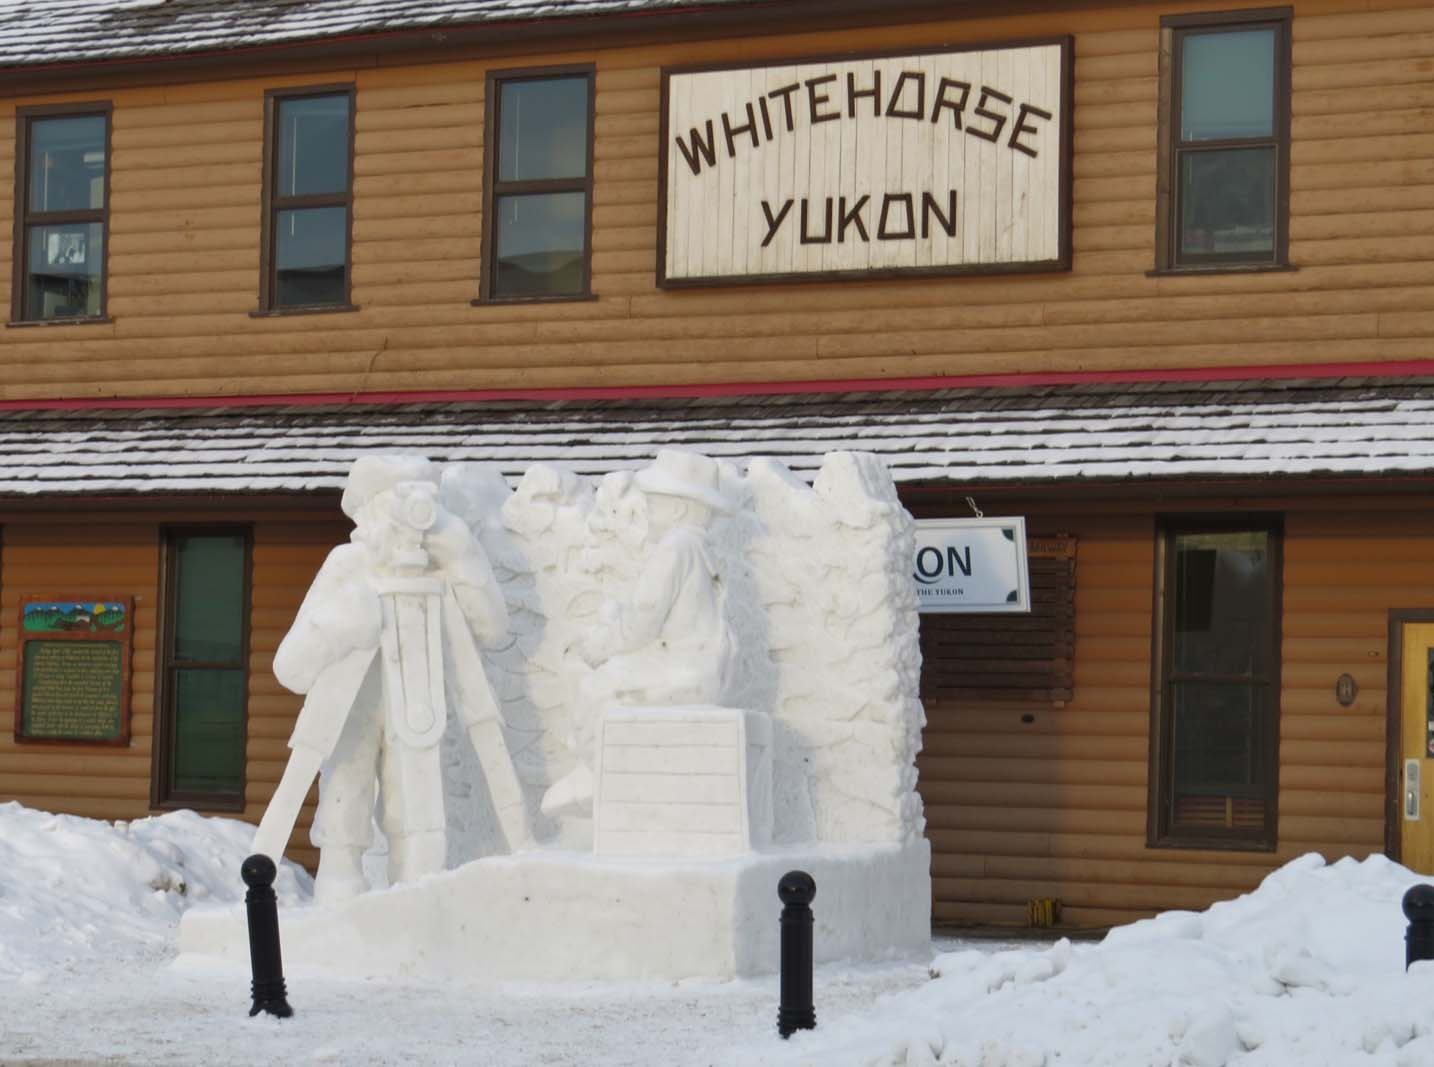 10 Winter Activities You Must do in Canada - Whitehorse festival